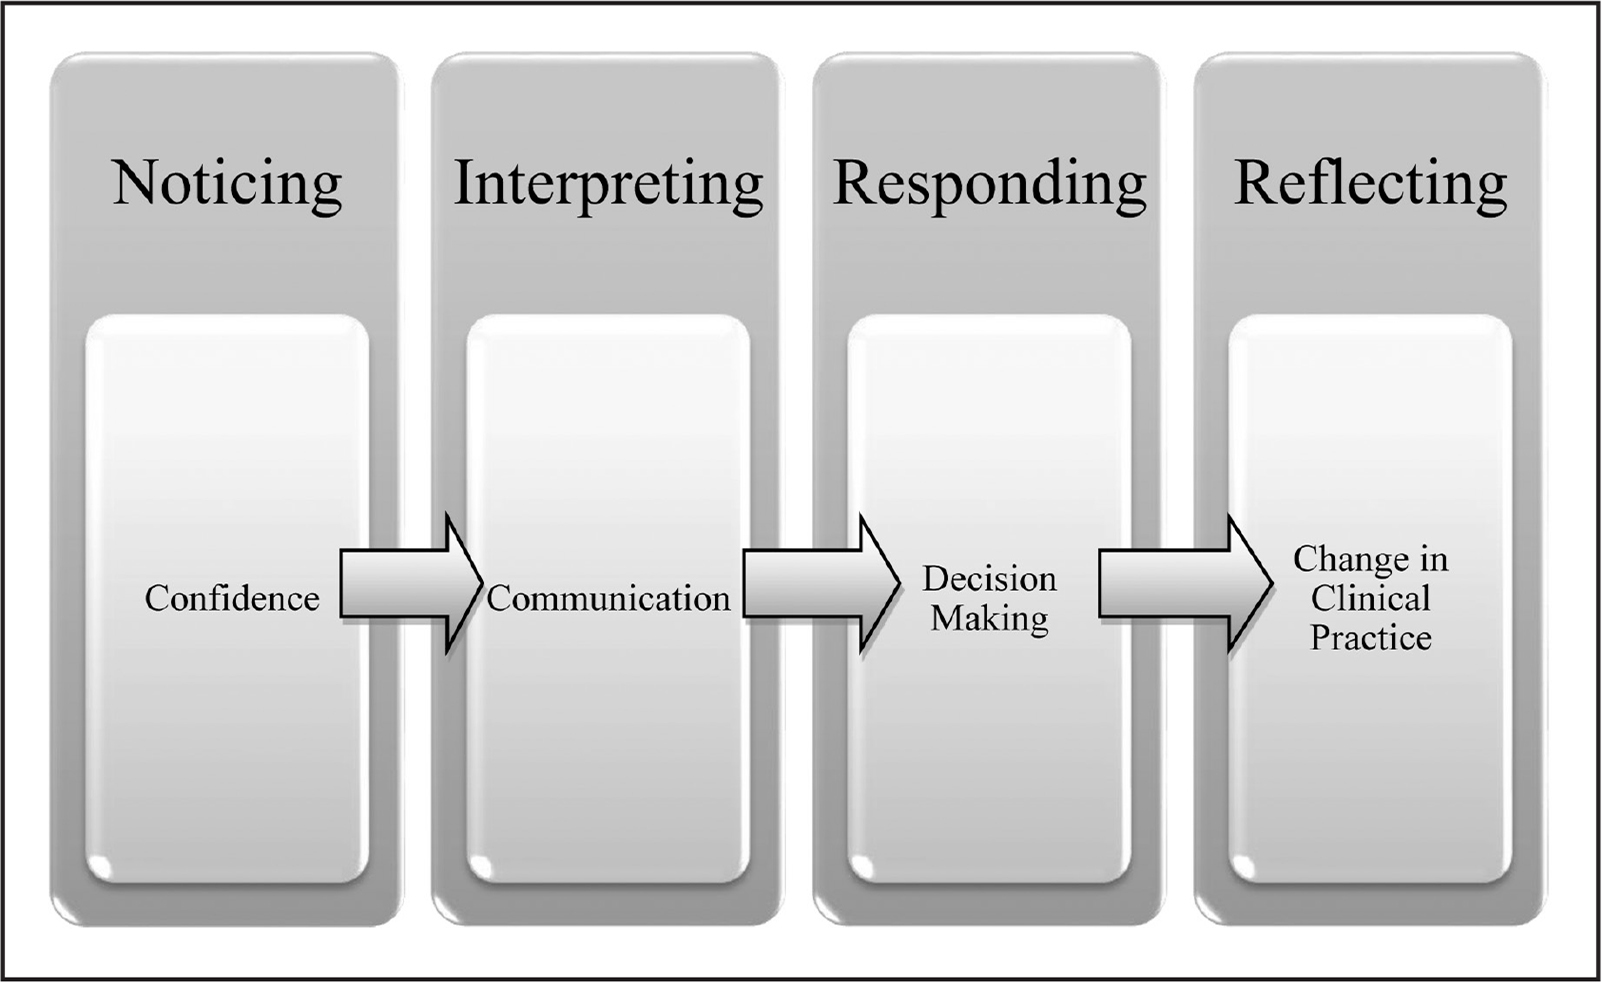 criticial reflection john s model nursing Criticalreflection cantaketheformofdifferentperspectivestothatoftheeducator's,literatureandtheoriesrelevanttothe reflectionadaptedfrombain(1999.